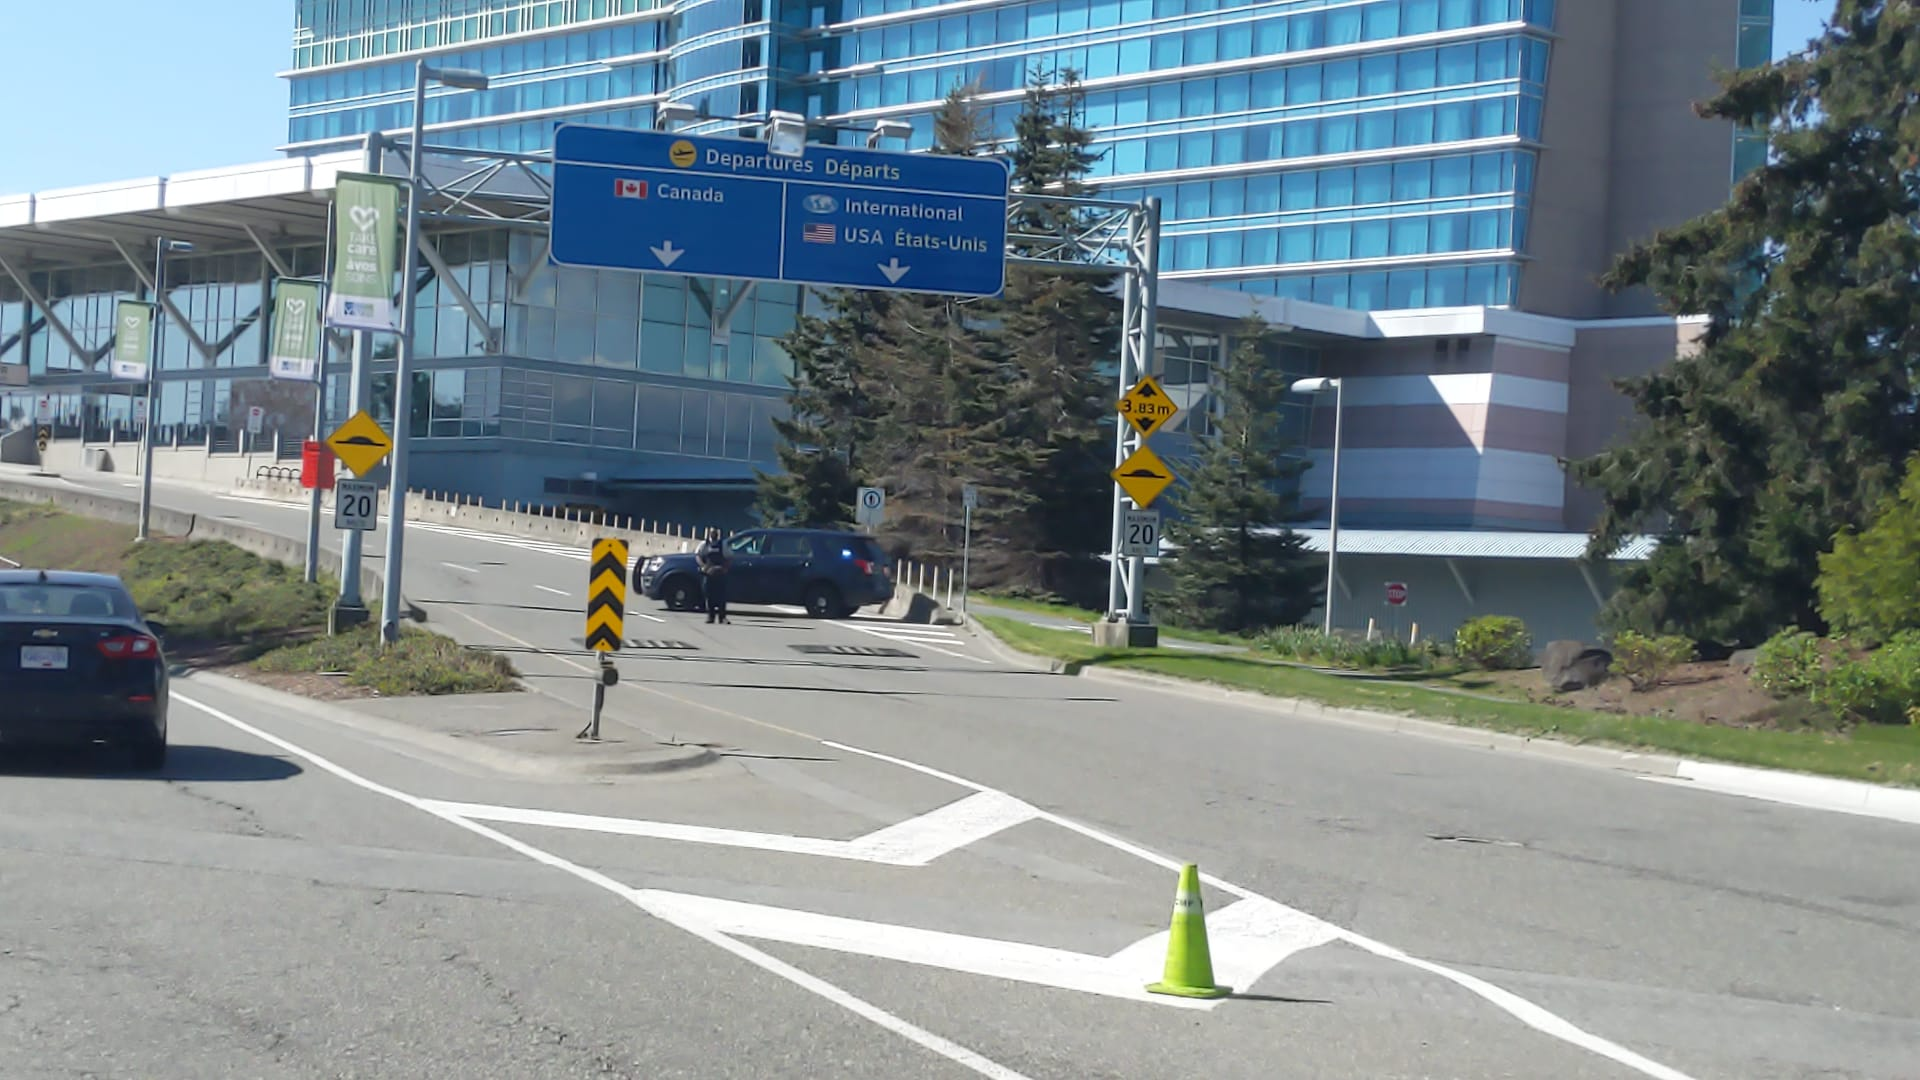 IHIT confirms the identity of YVR Shooting Victim